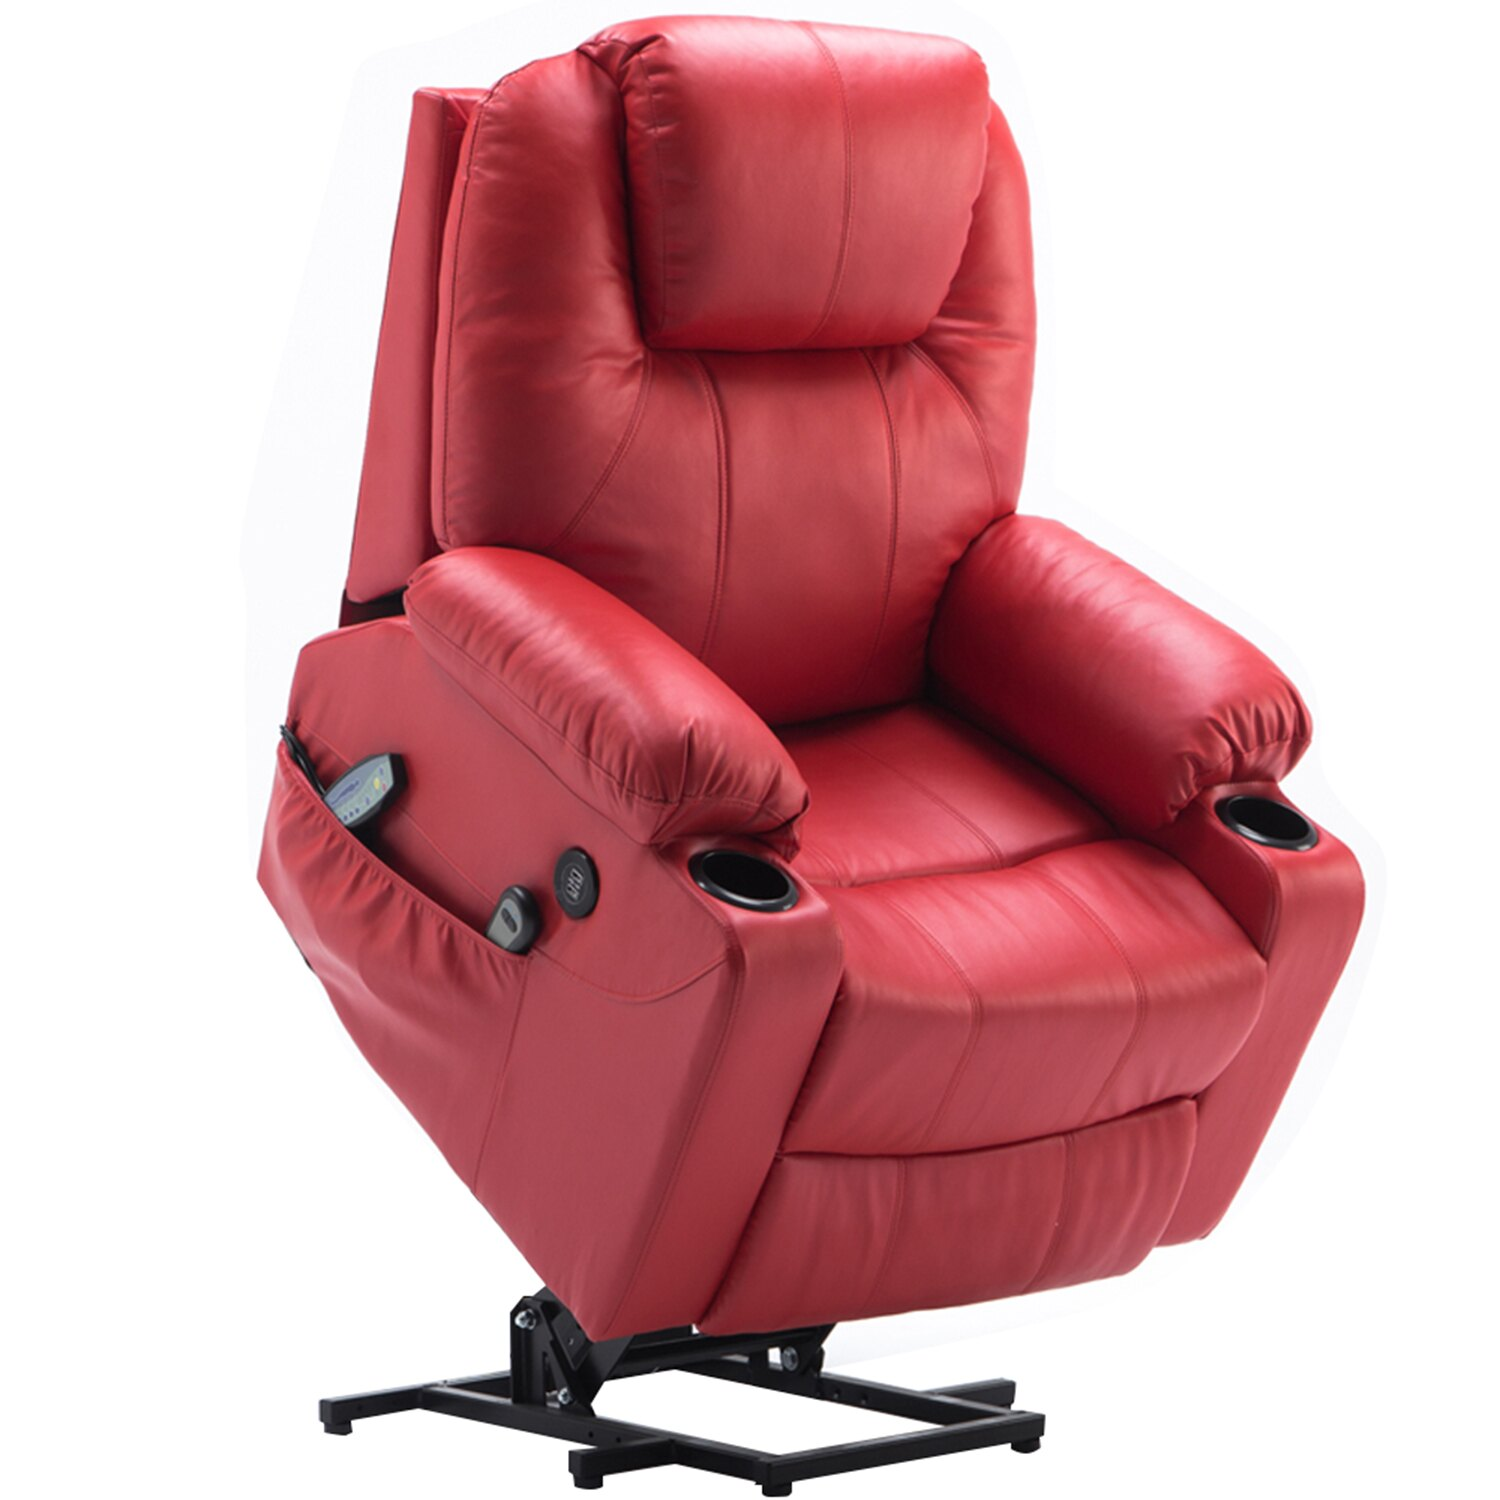 Electric Power Lift Chair Massage Sofa Recliner